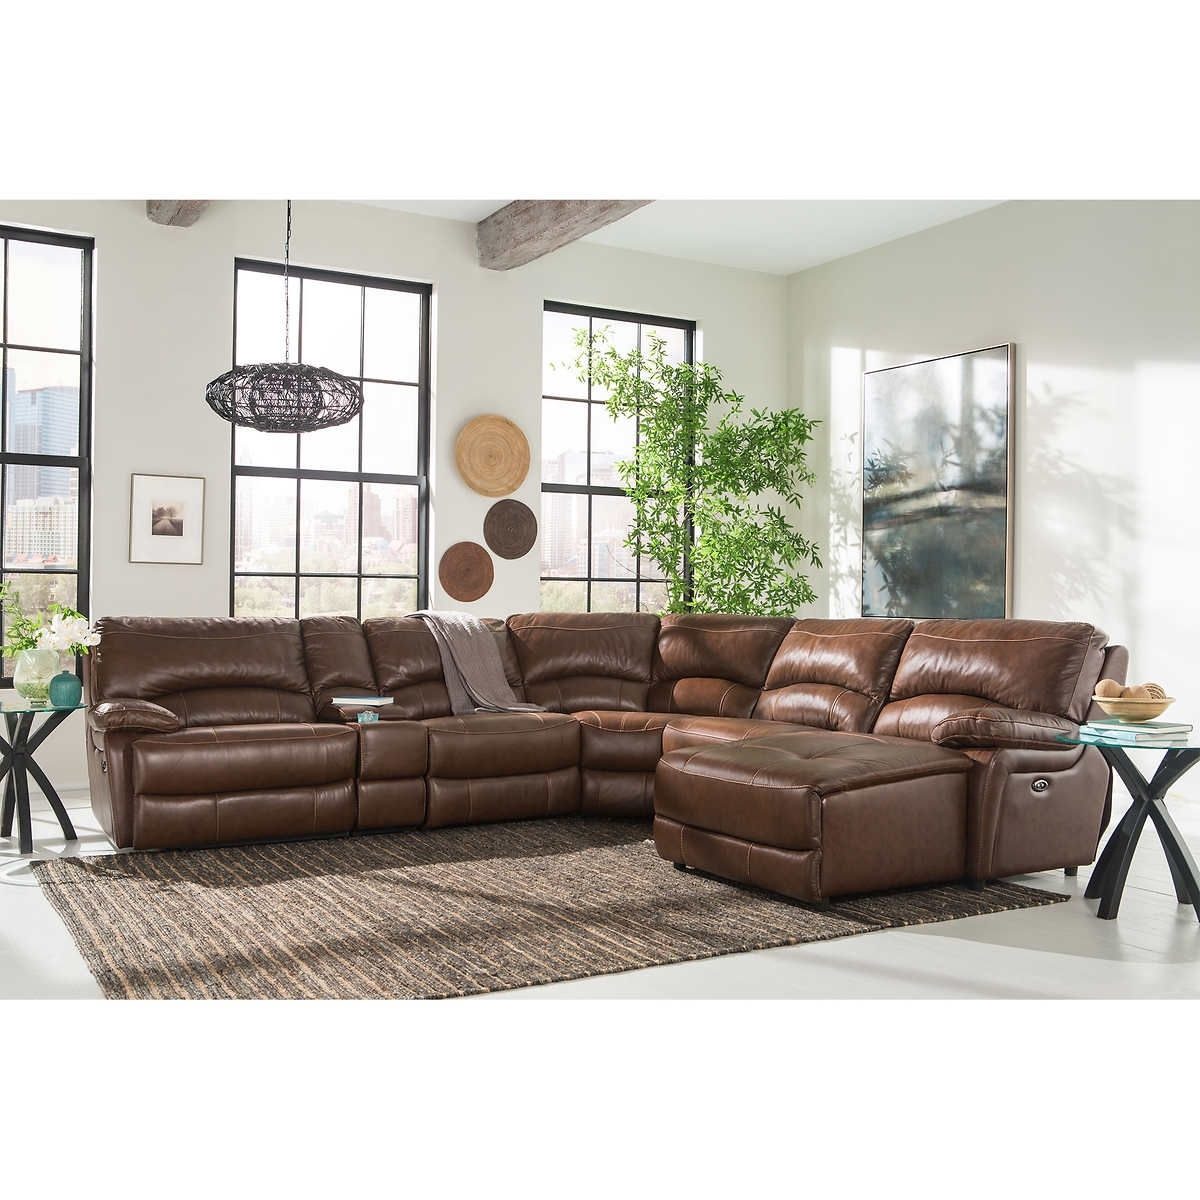 Furniture: Sofa 6 Piece Leather Sectional Sofa Cooper 6 Piece Leather Throughout 6 Piece Leather Sectional Sofas (View 4 of 10)